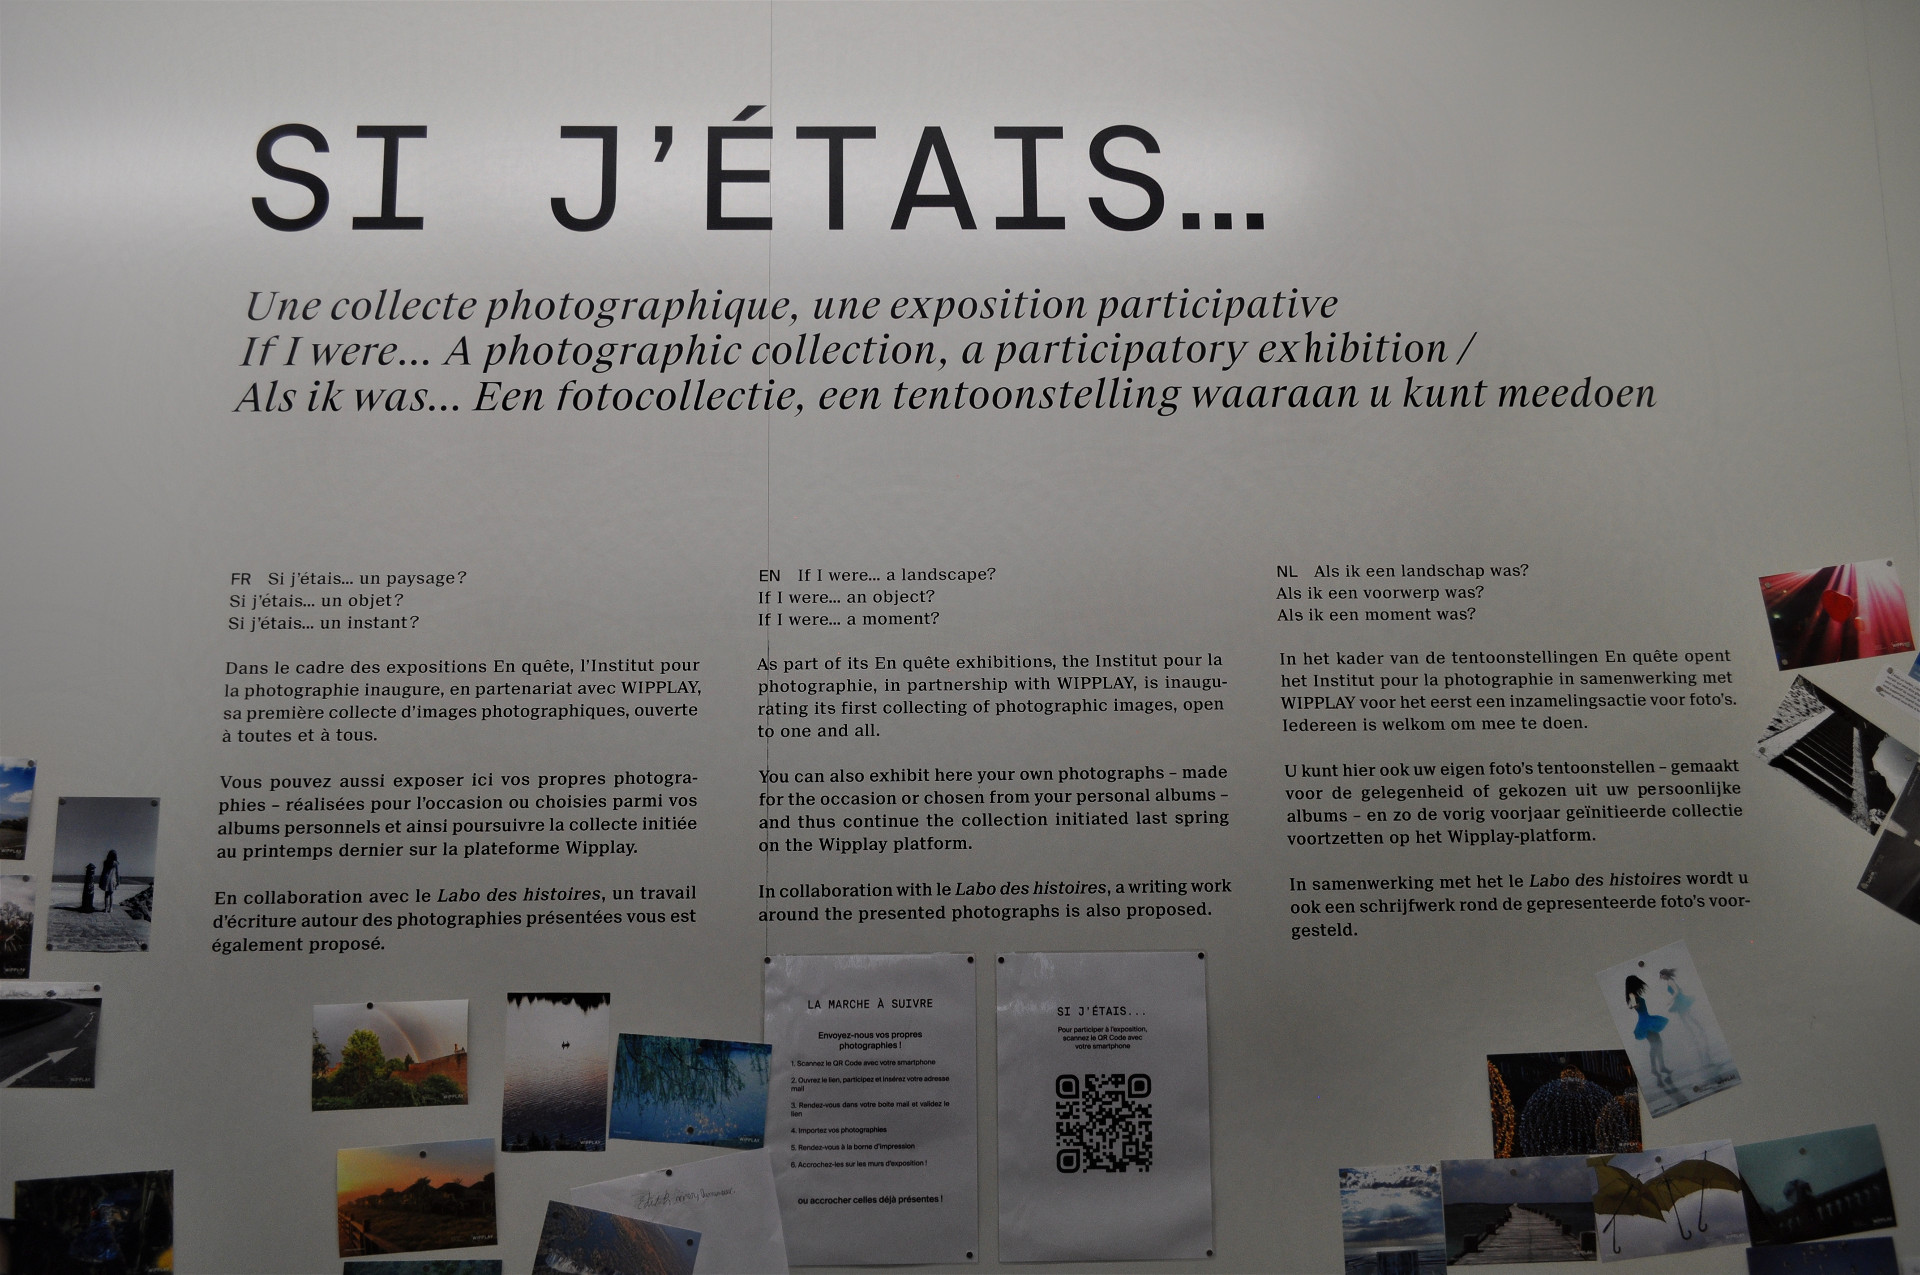 exposition, photographie